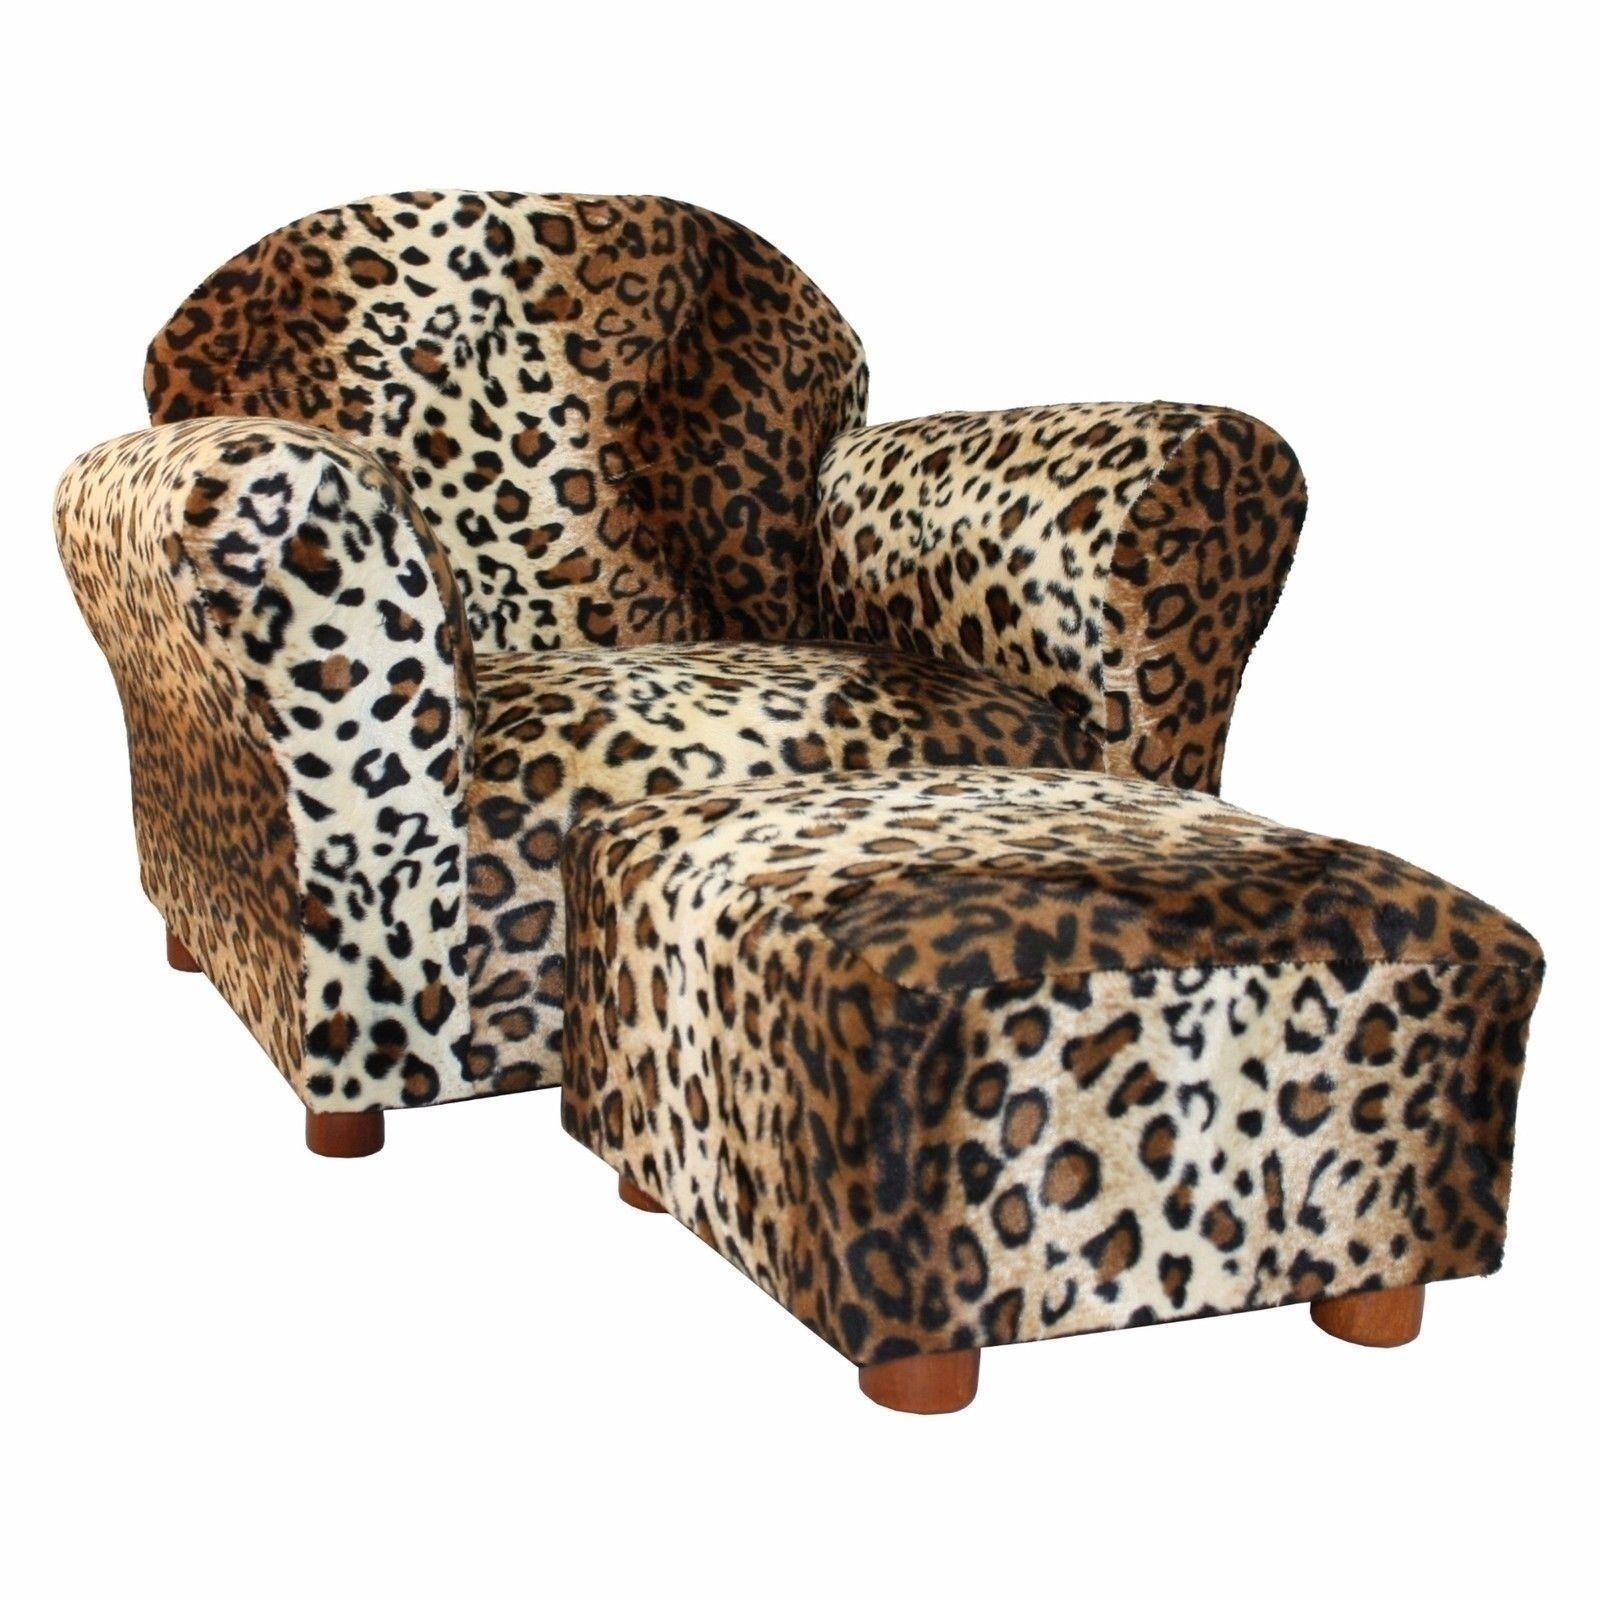 Fullsize Of Plush Chair And Ottoman